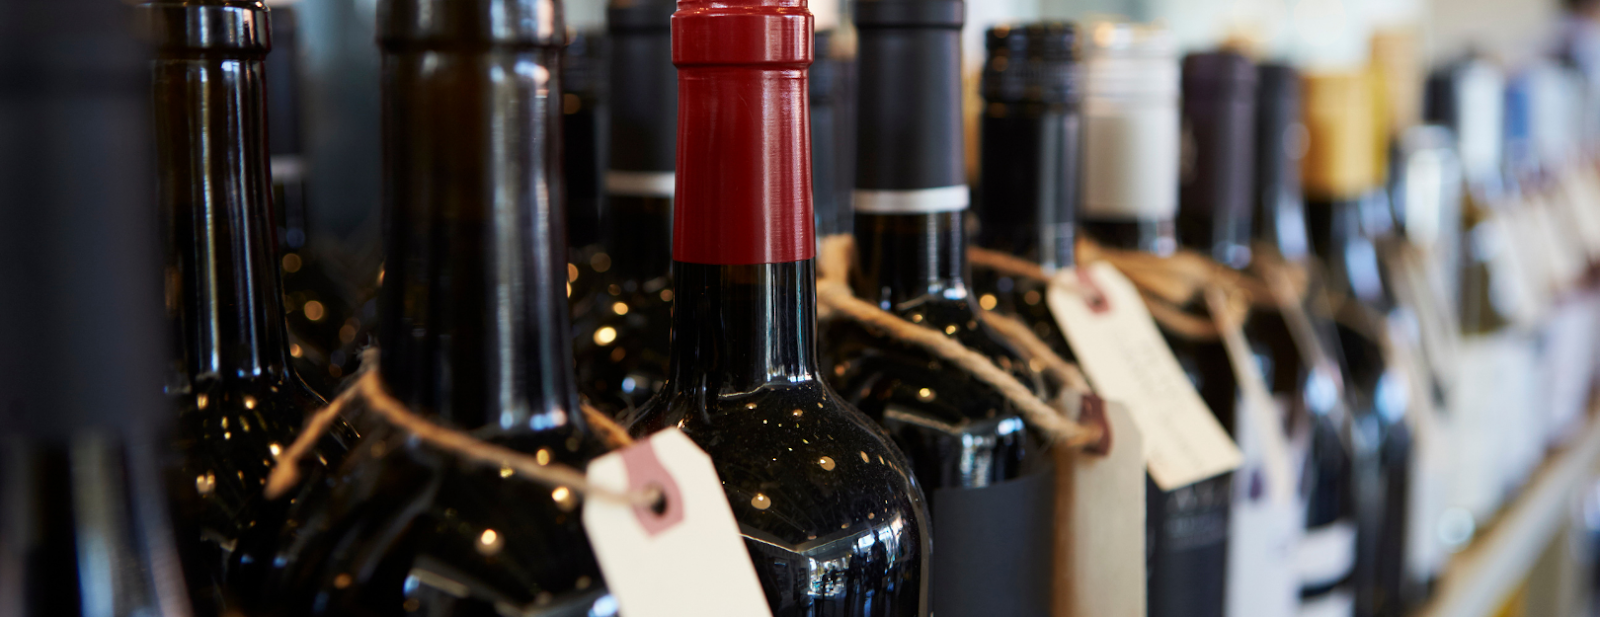 Order wine online for your next wine pairing party